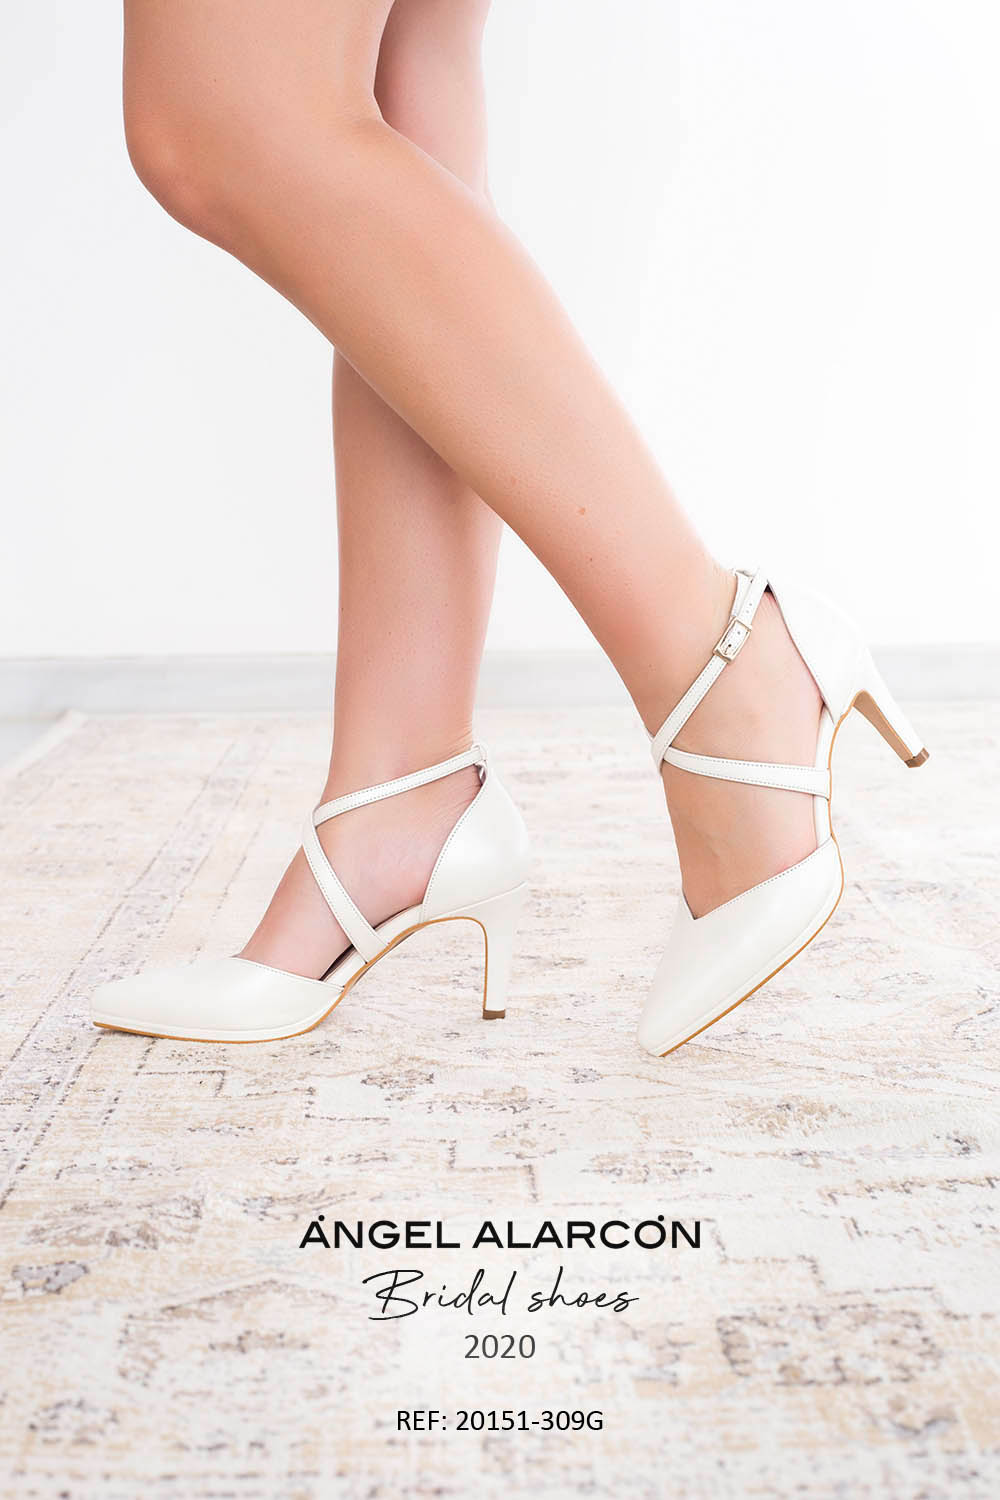 bridal shoes 2020 20151-309G WHITE B - Comfortable women's wedding shoes by Ángel Alarcón